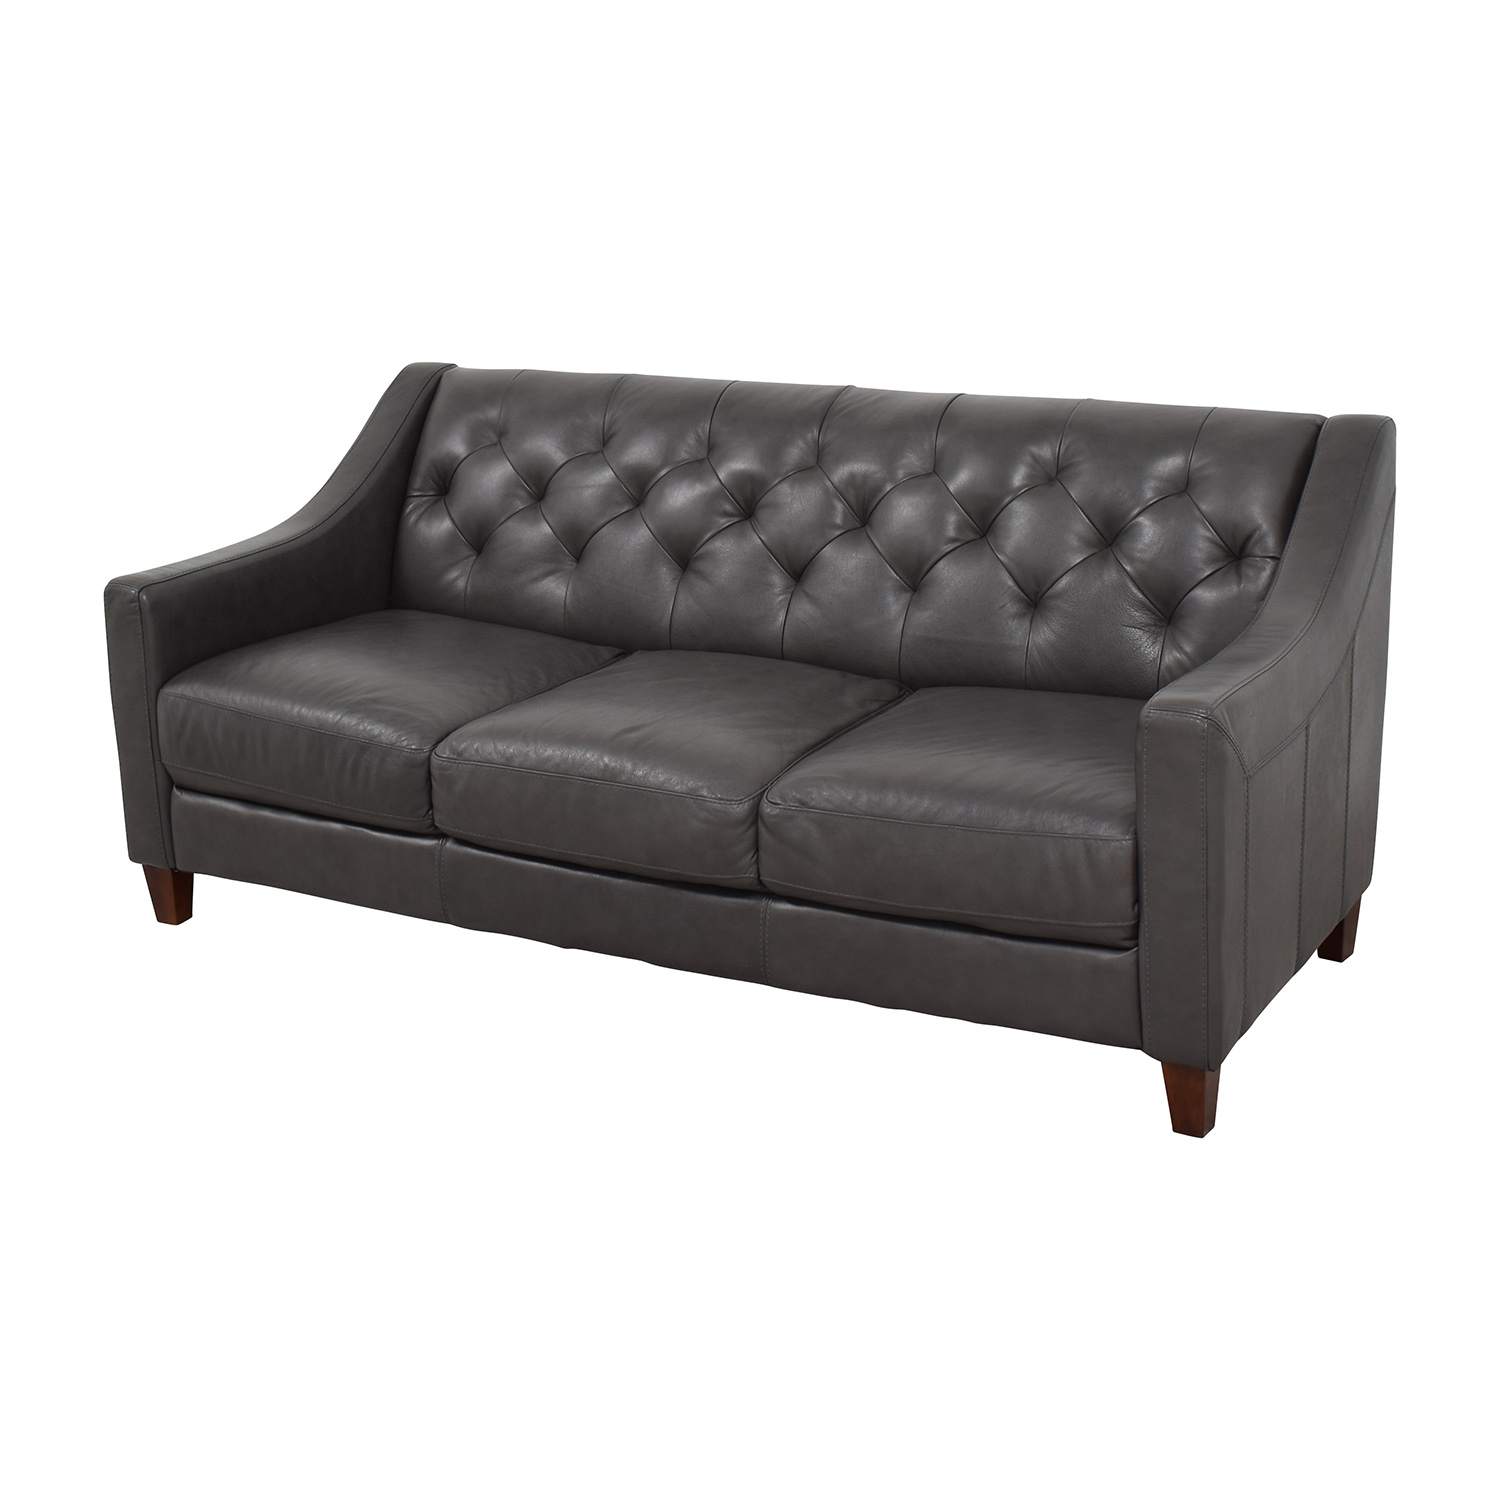 Macy's Macy's Tufted Gray Leather Sofa / Sofas